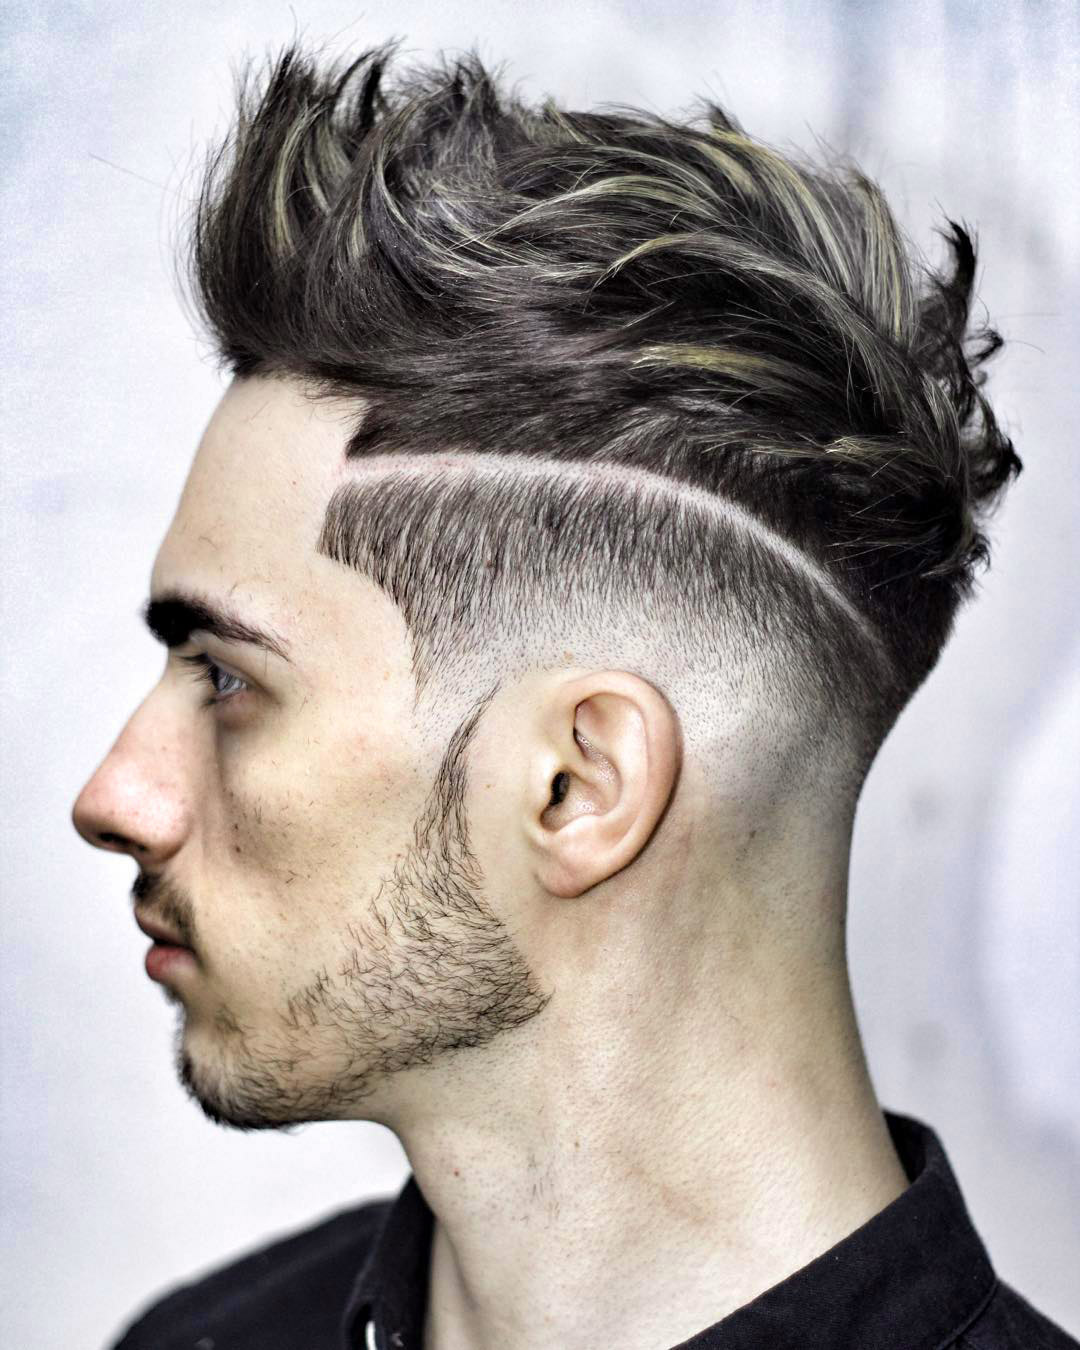 BOYS HAIR STYLISH DESIGN IMAGES PHOTO FOR WHATSAPP